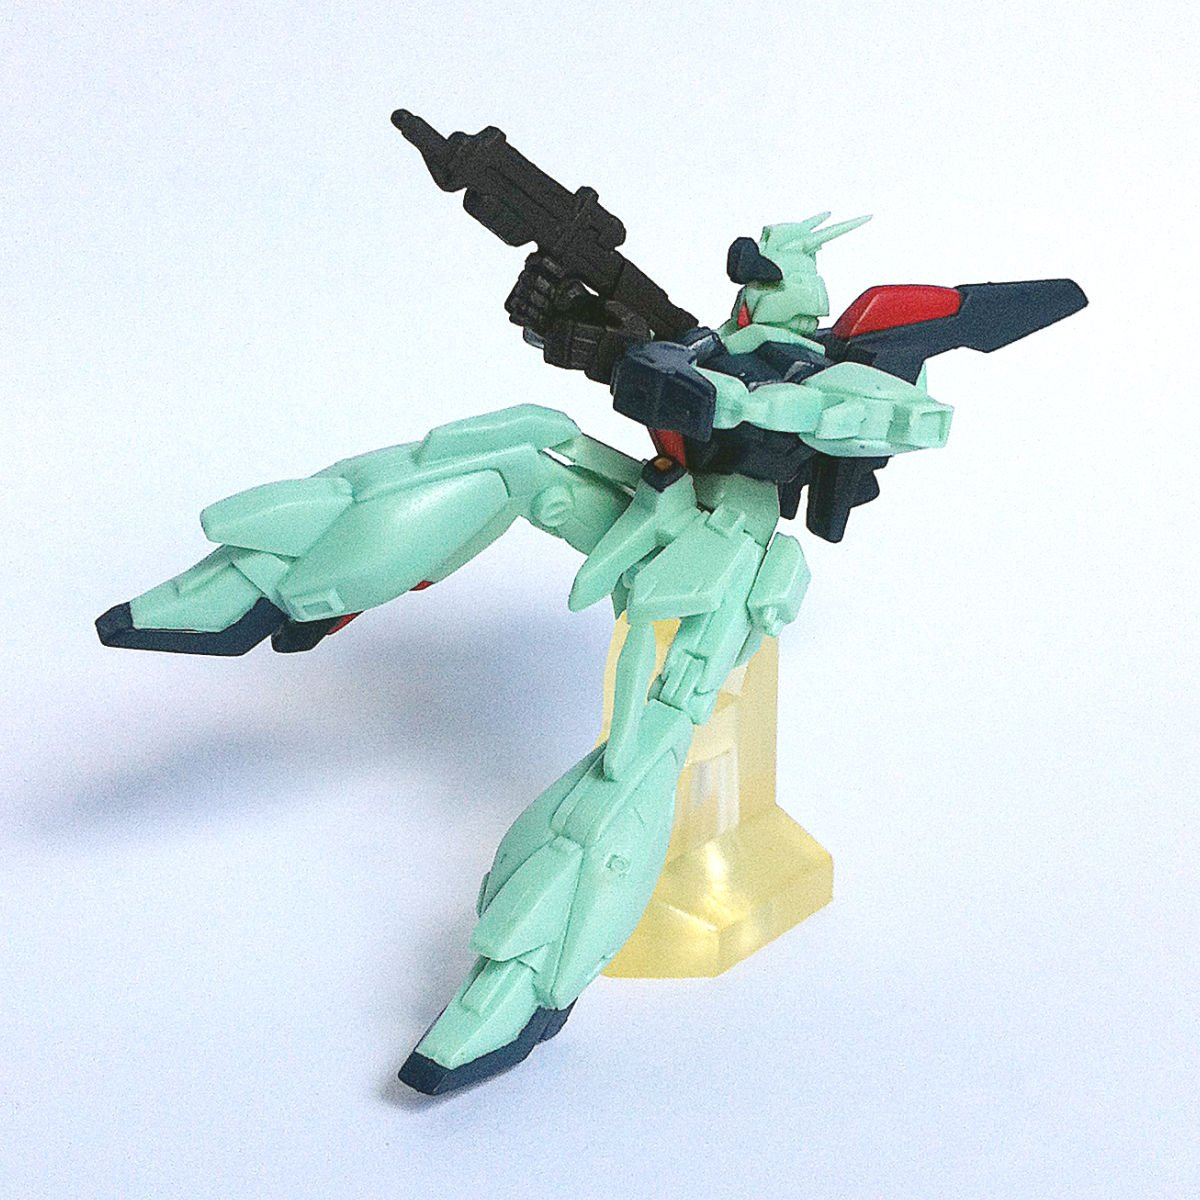 RGZ-91 Re-GZ from HG Gundam MS Selection by Bandai